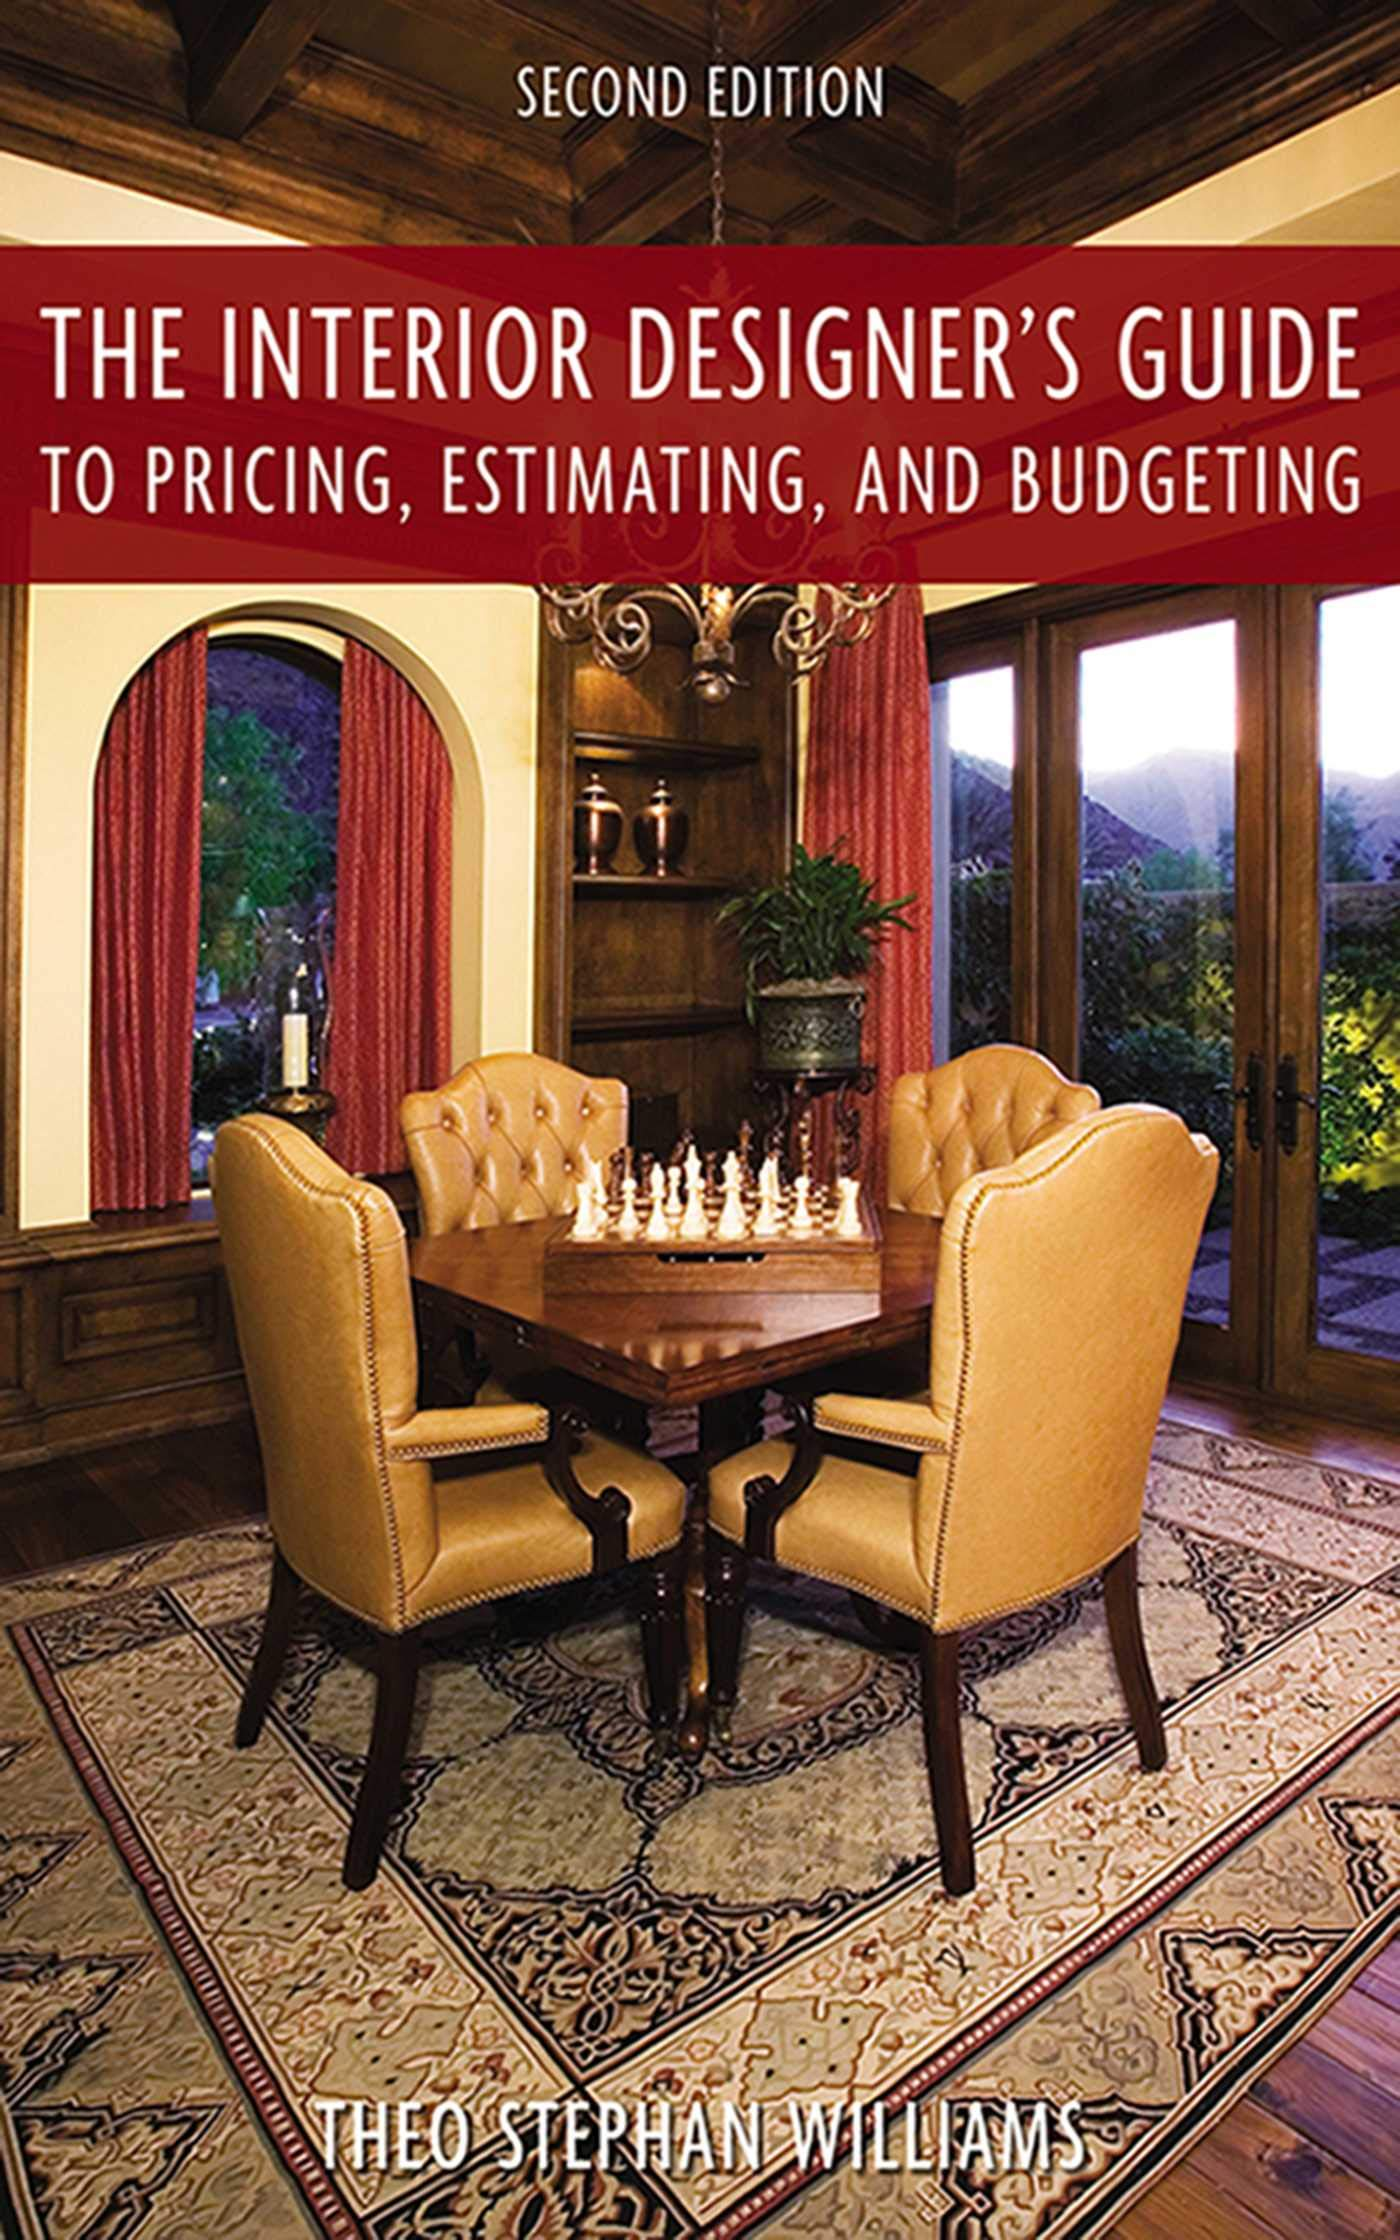 Amazon Com The Interior Designer S Guide To Pricing Estimating And Budgeting 9781581157185 Williams Theo Stephen Books